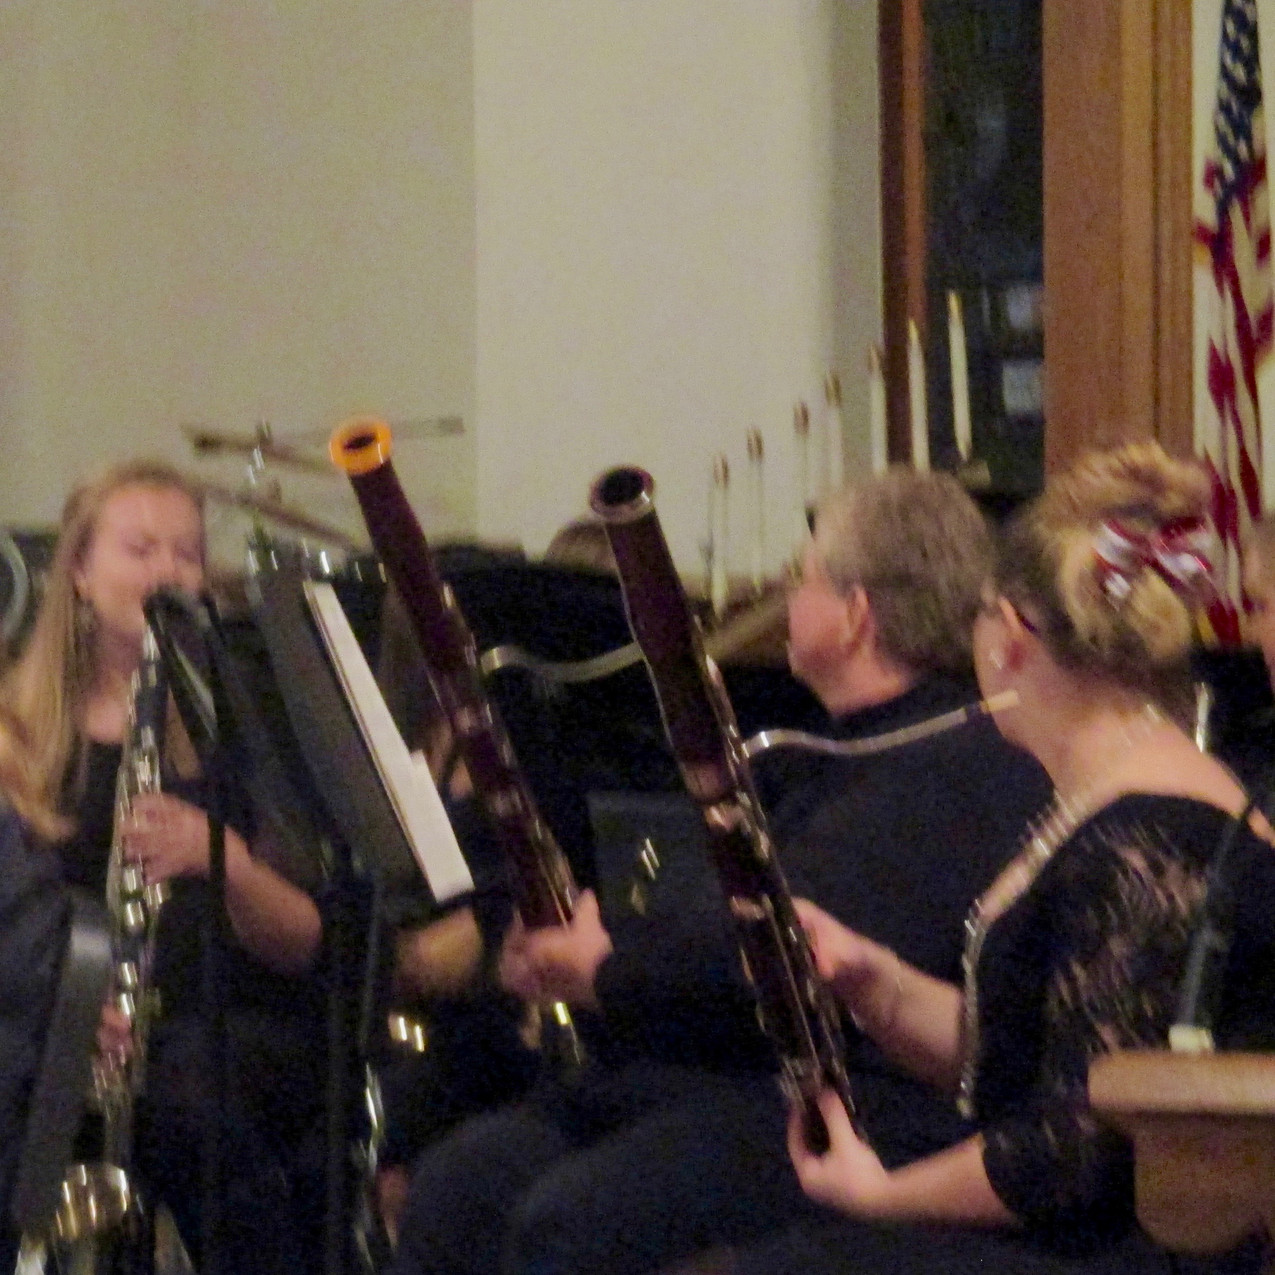 The Wind Ensemble, under the director of Jeremy Duby, performed five patriotic pieces during a Nov. 11 Veterans Day concert.